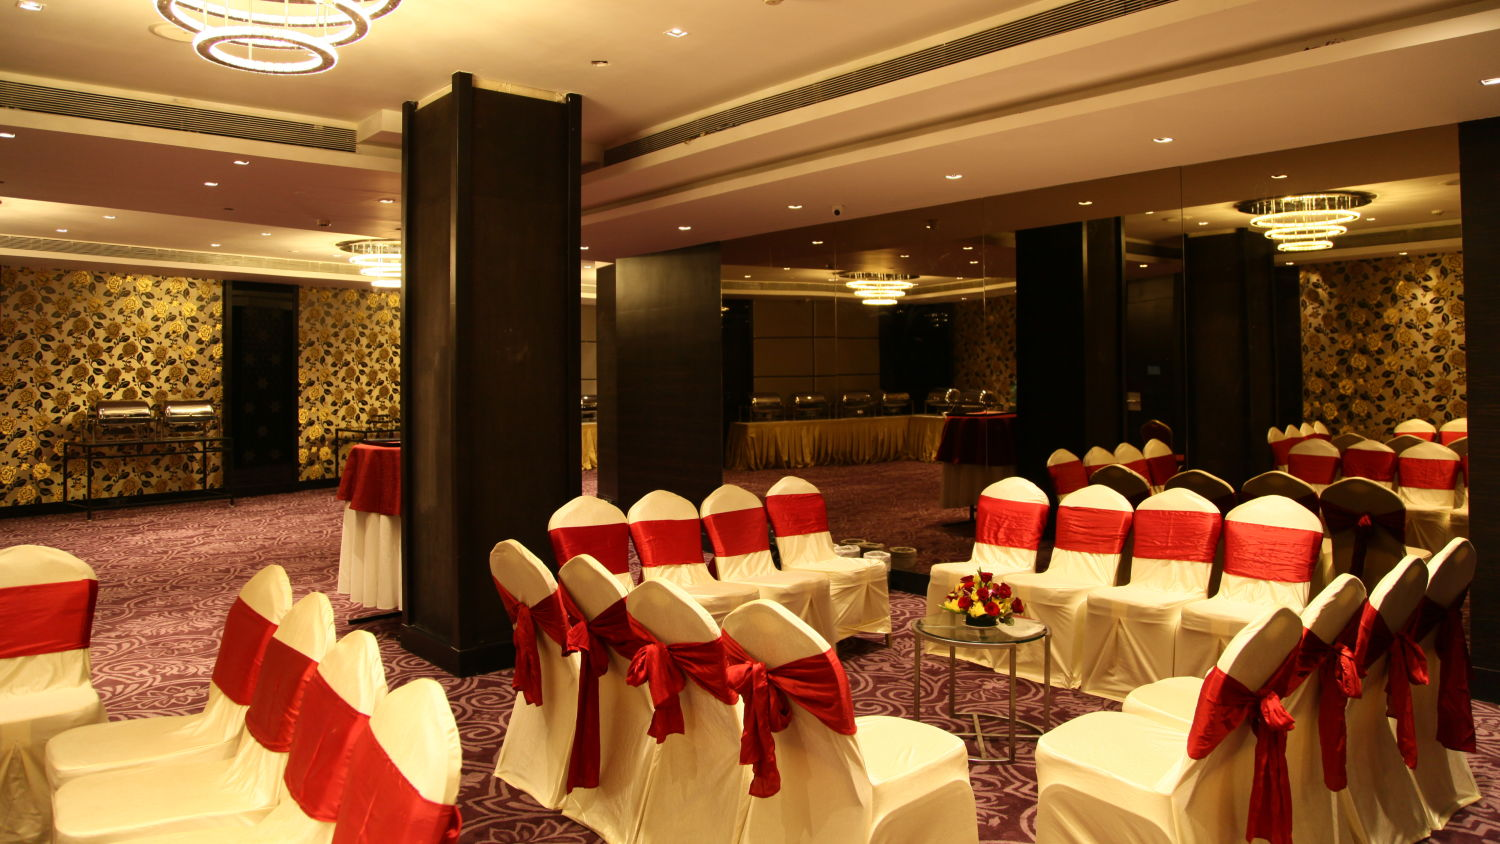 Banquet Hall Magnolia at Grand Hometel Mumbai, malad hotels near mindspace